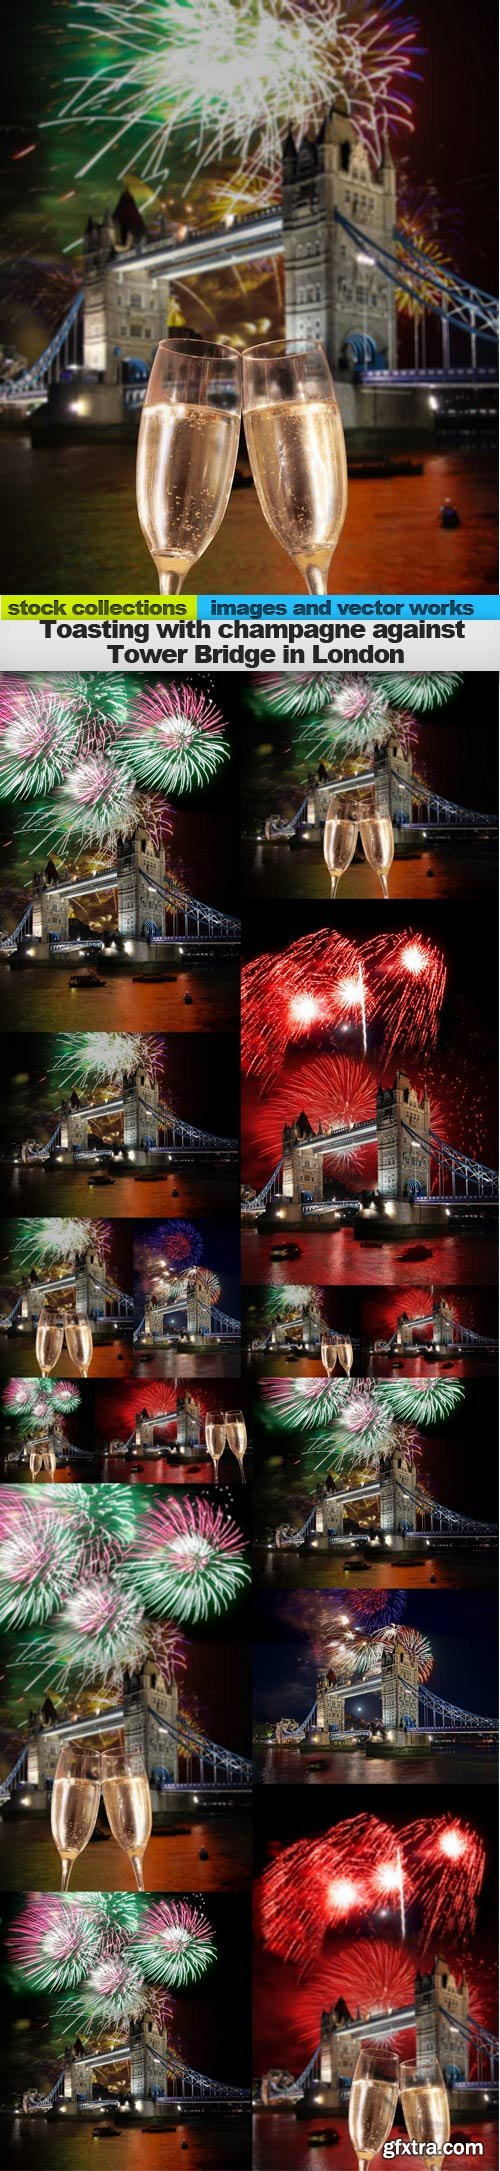 Toasting with champagne against Tower Bridge in London,